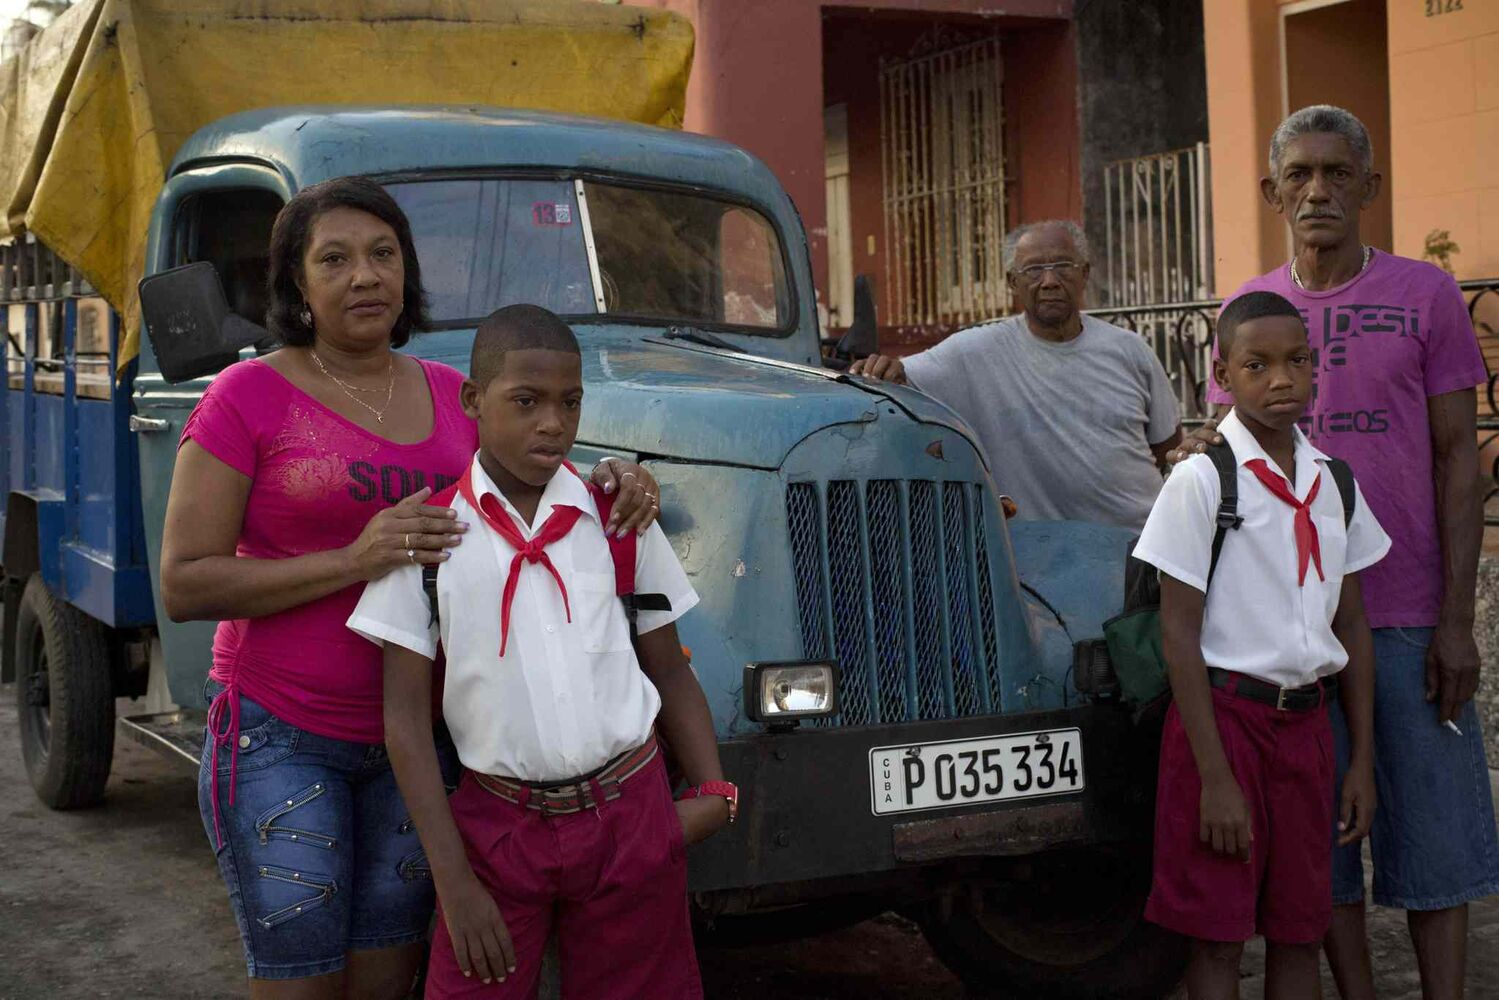 Eleven-year-old twin brothers Arian and Adrian Cueto pose for portraits in their school uniforms alongside their parents and grandfather as they gather around their family's truck in Havana, Cuba.